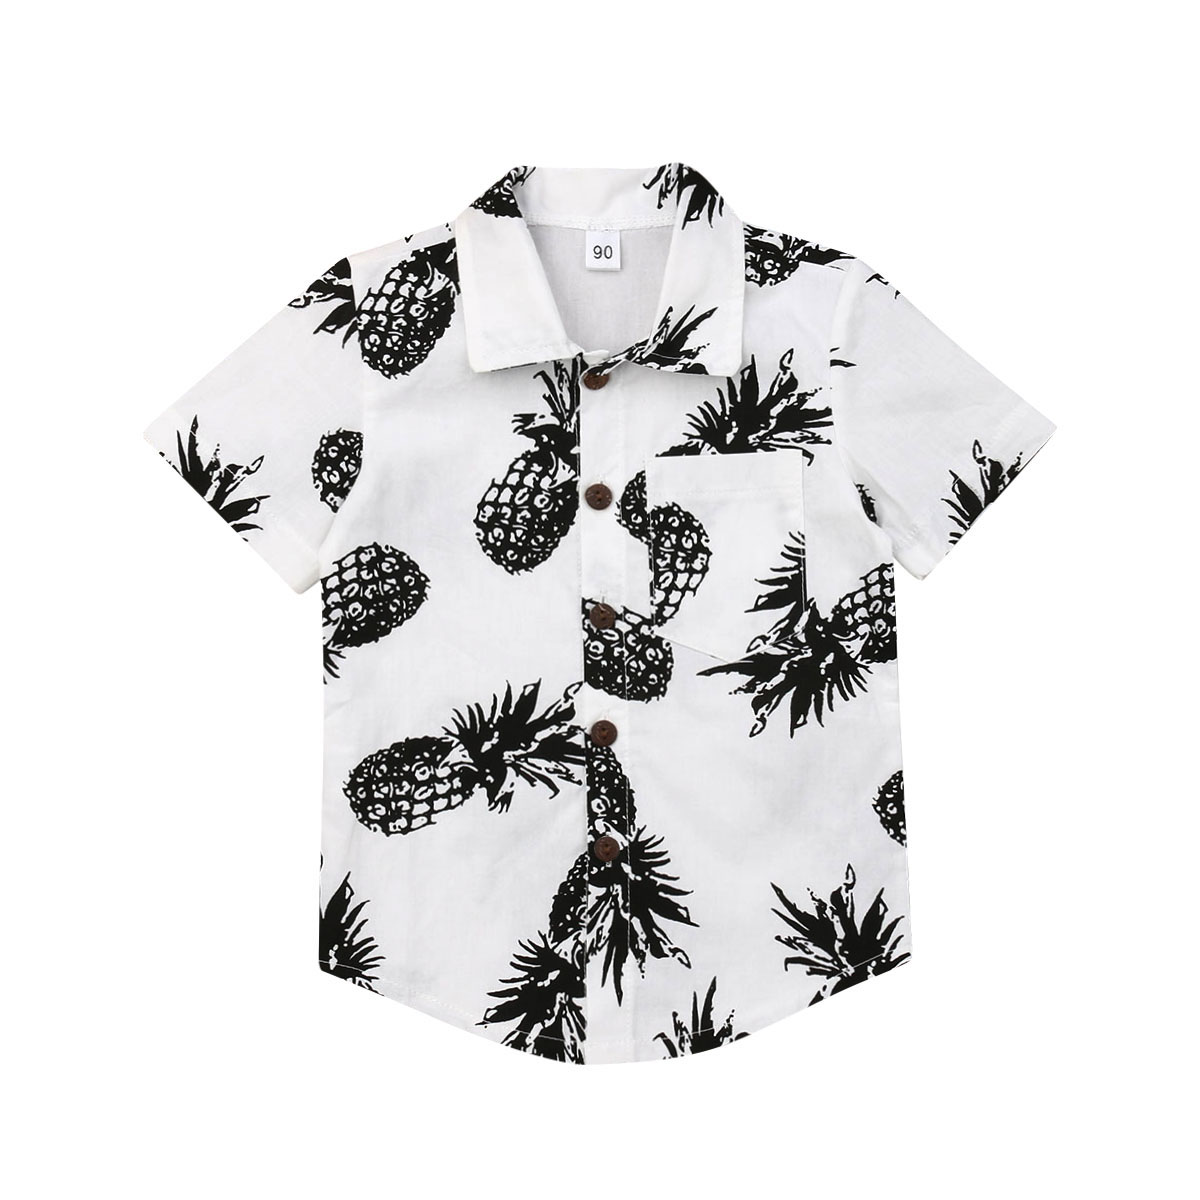 Pudcoco Tops Pineapple-Shirts Short-Sleeves Button-Up Boys Kids Summer Casual Beach